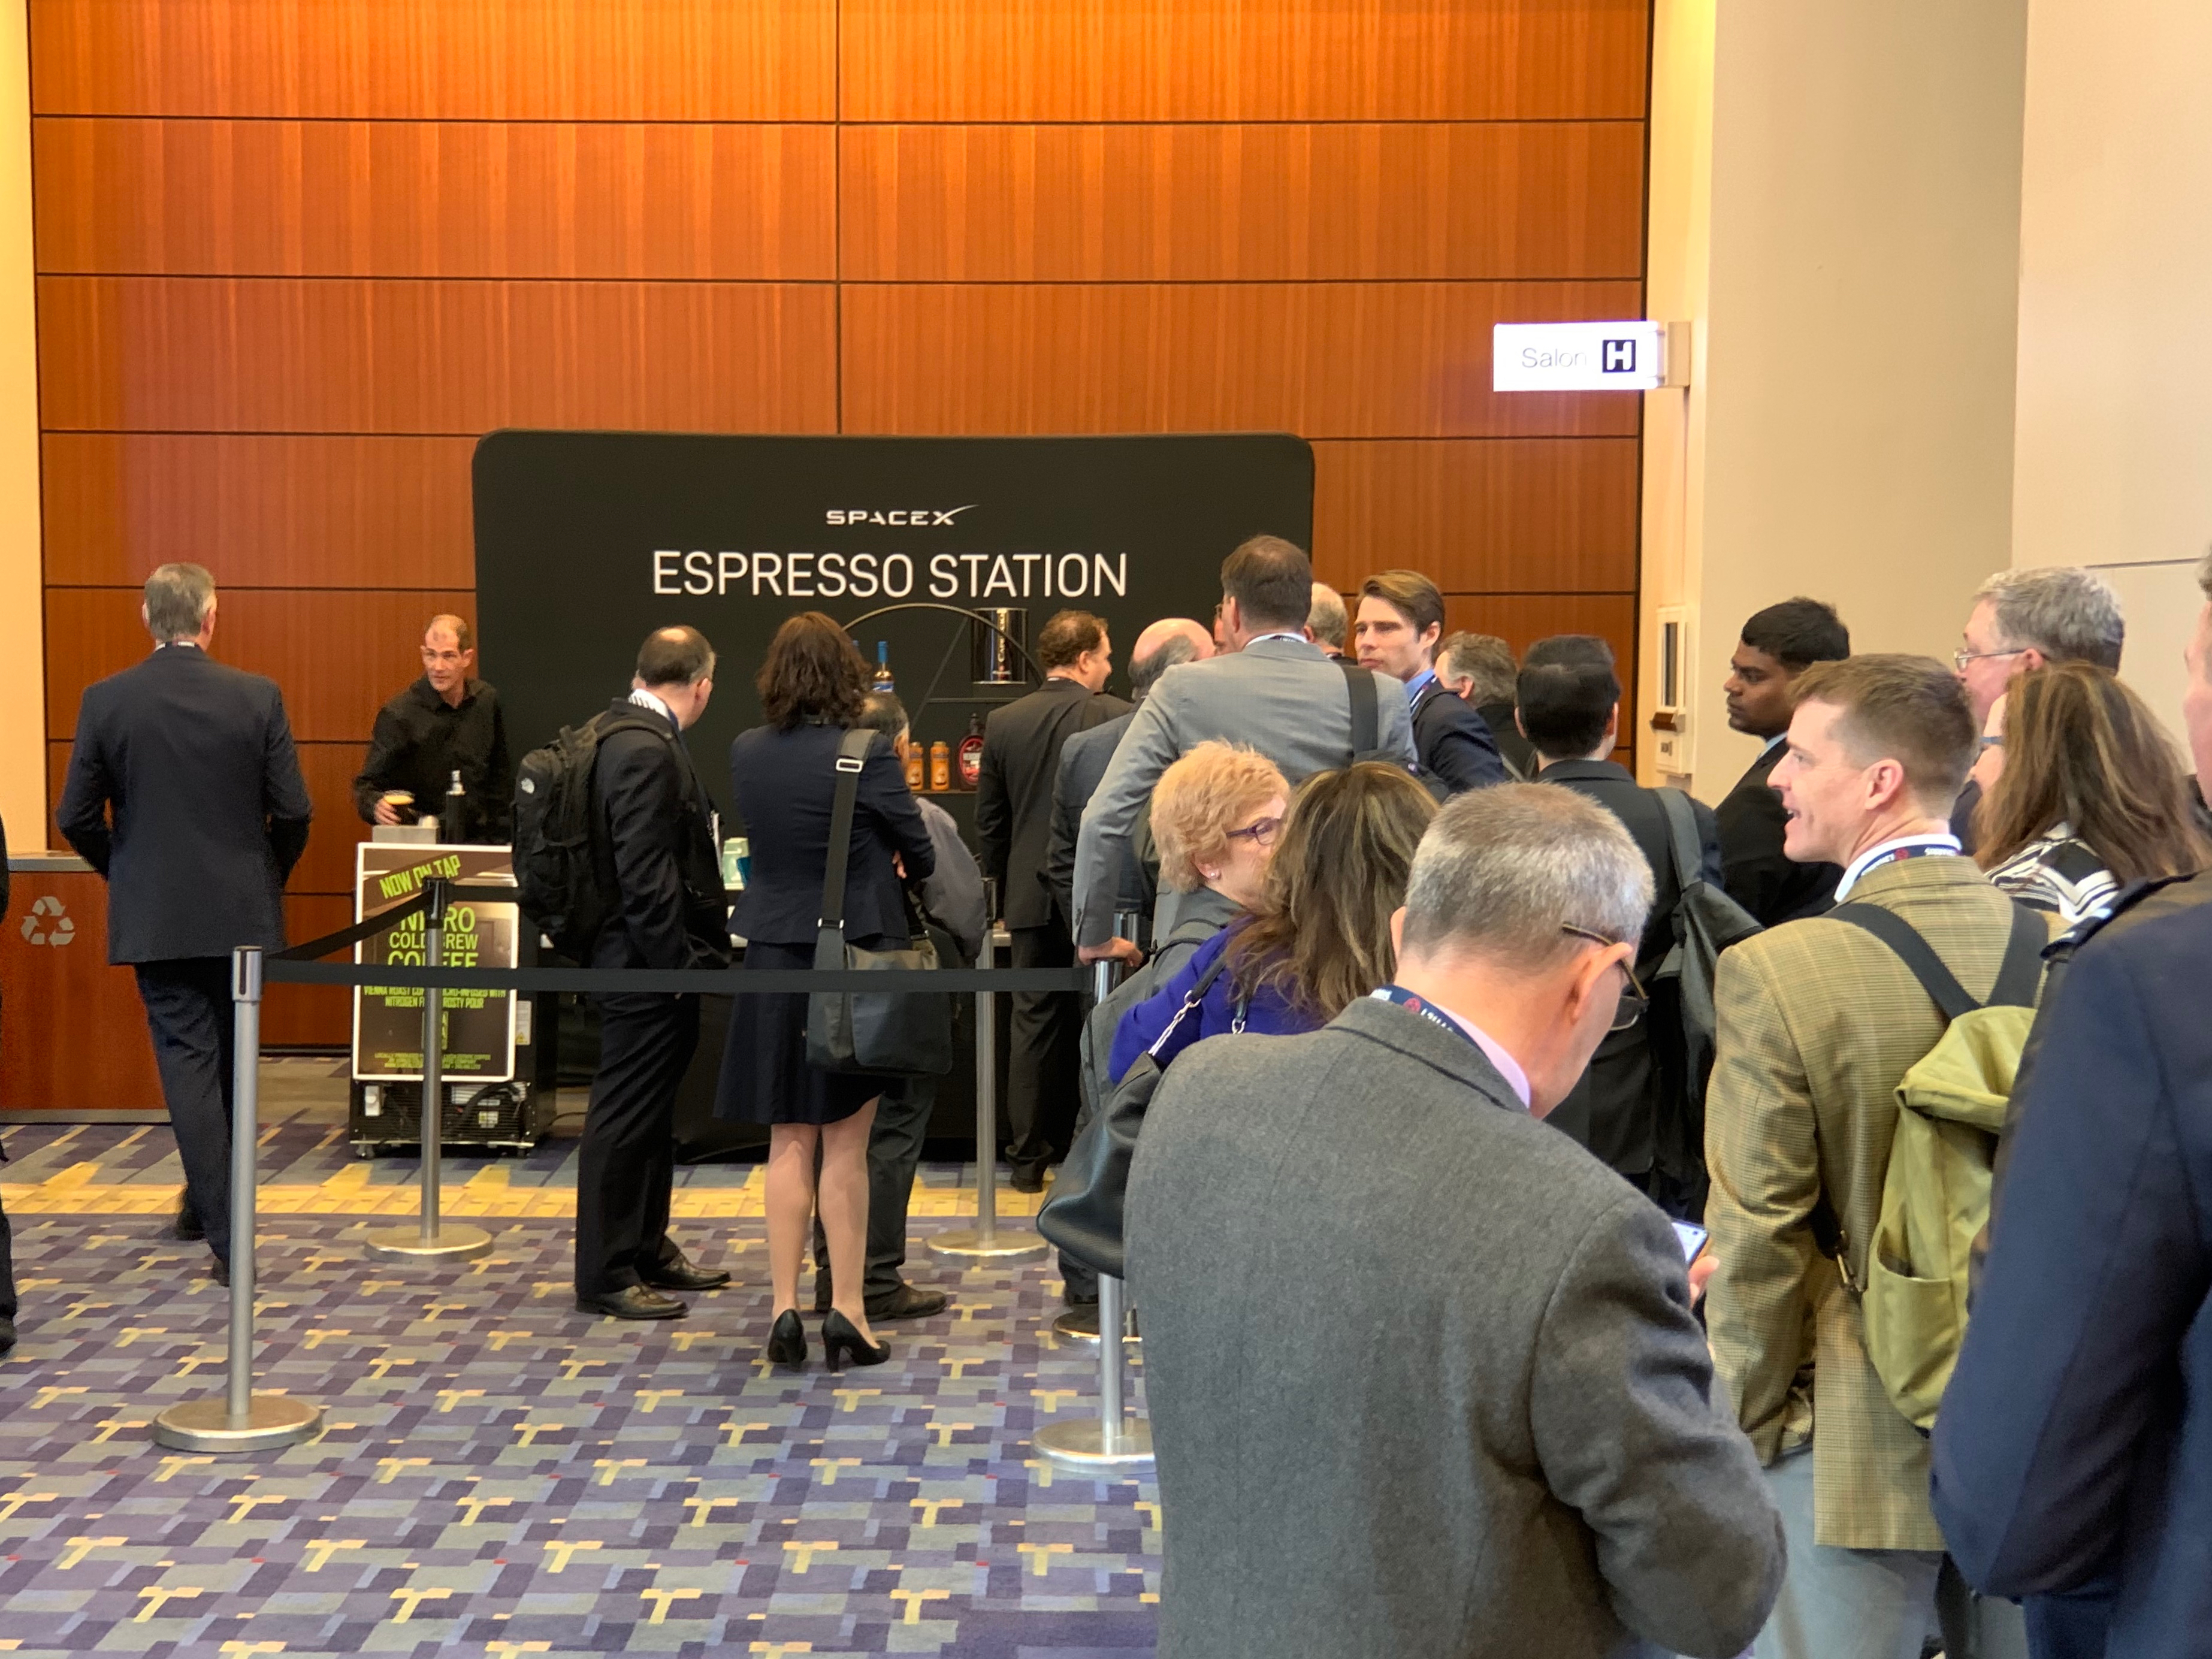 SpaceX sponsored a coffee counter outside the main registration area and it was easily the most popular stand at the whole show.